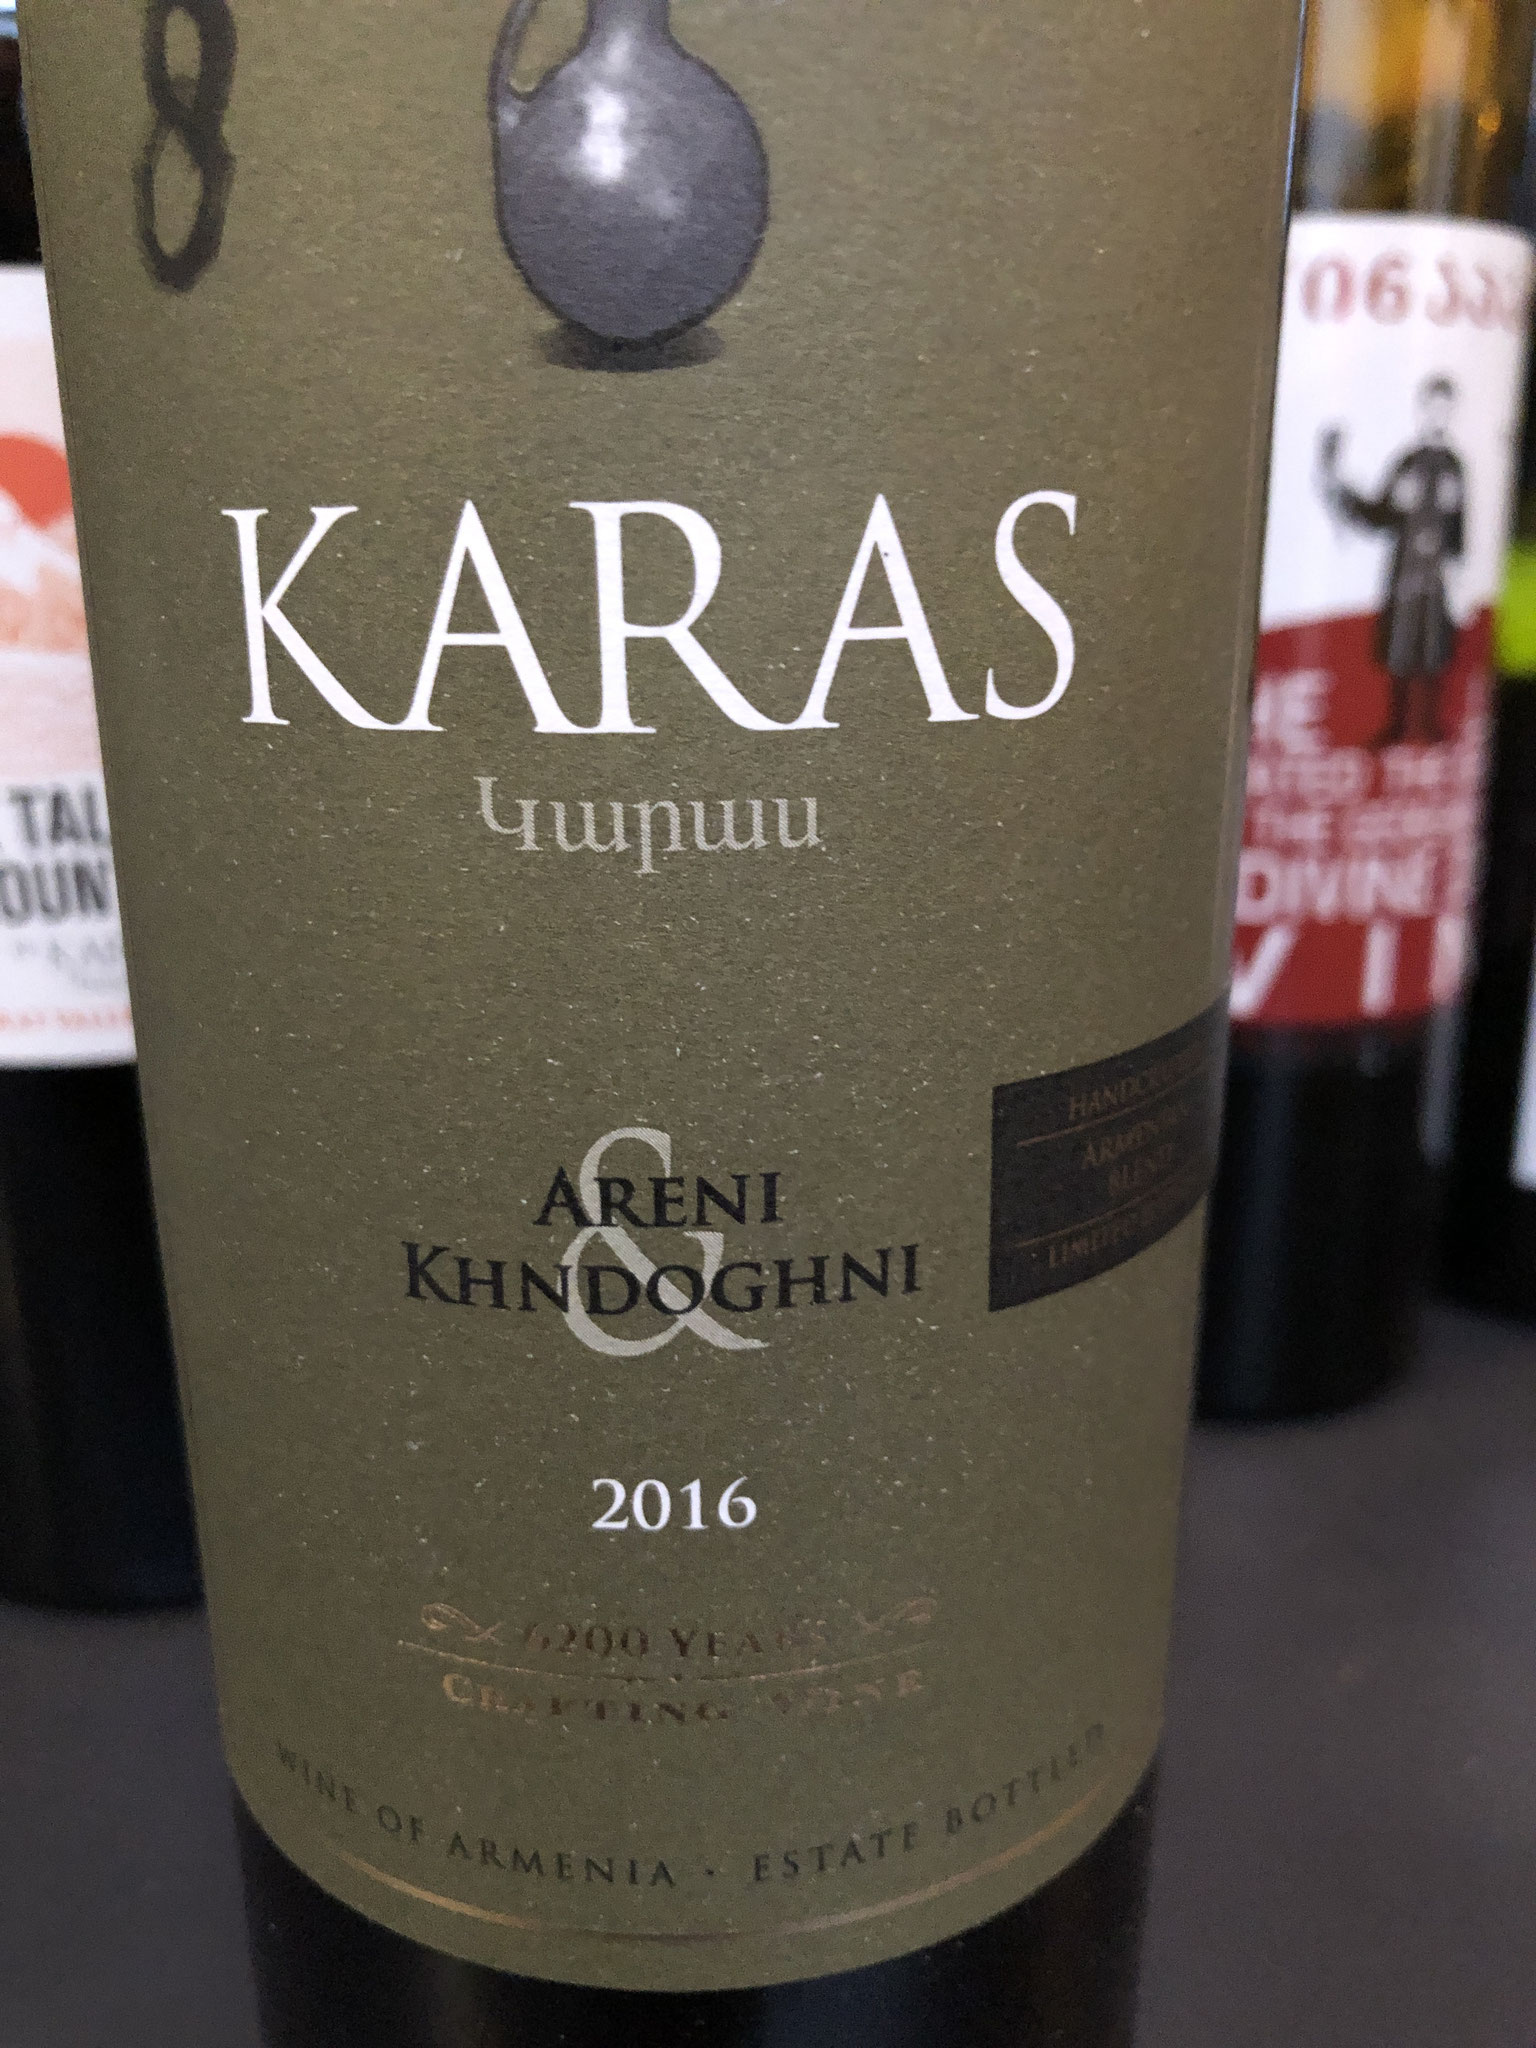 red and black fruit, soft Ripe tannins, nice balance, long final, juicy with lots of fruit and complexity, A